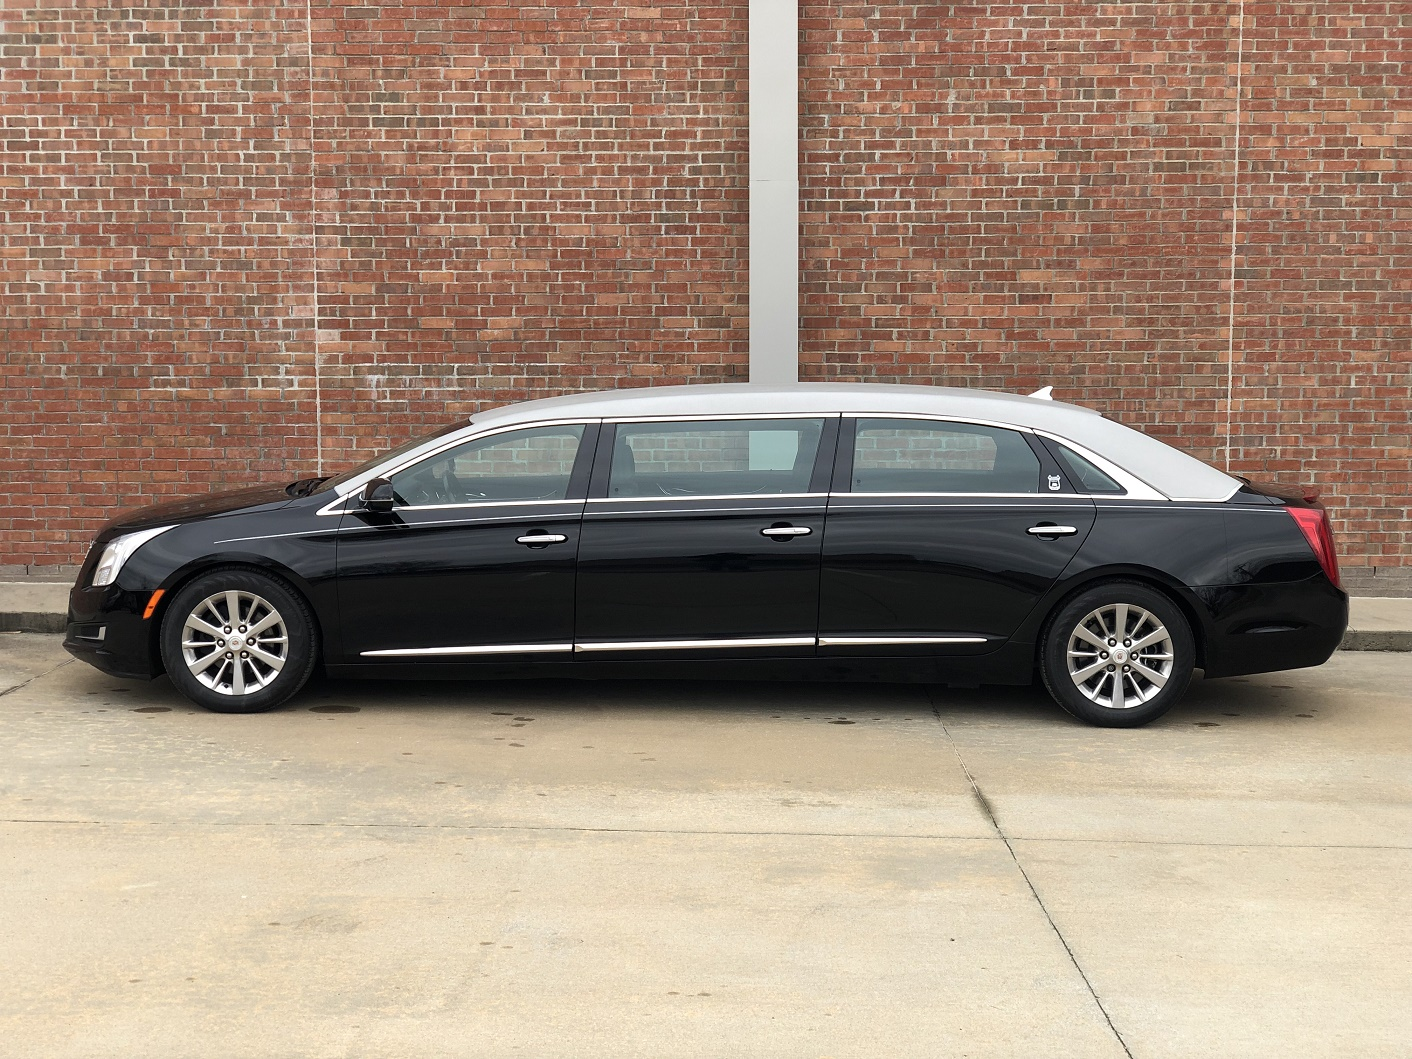 2014 Armbruster Stageway Black Six Door Funeral Limousine for sale